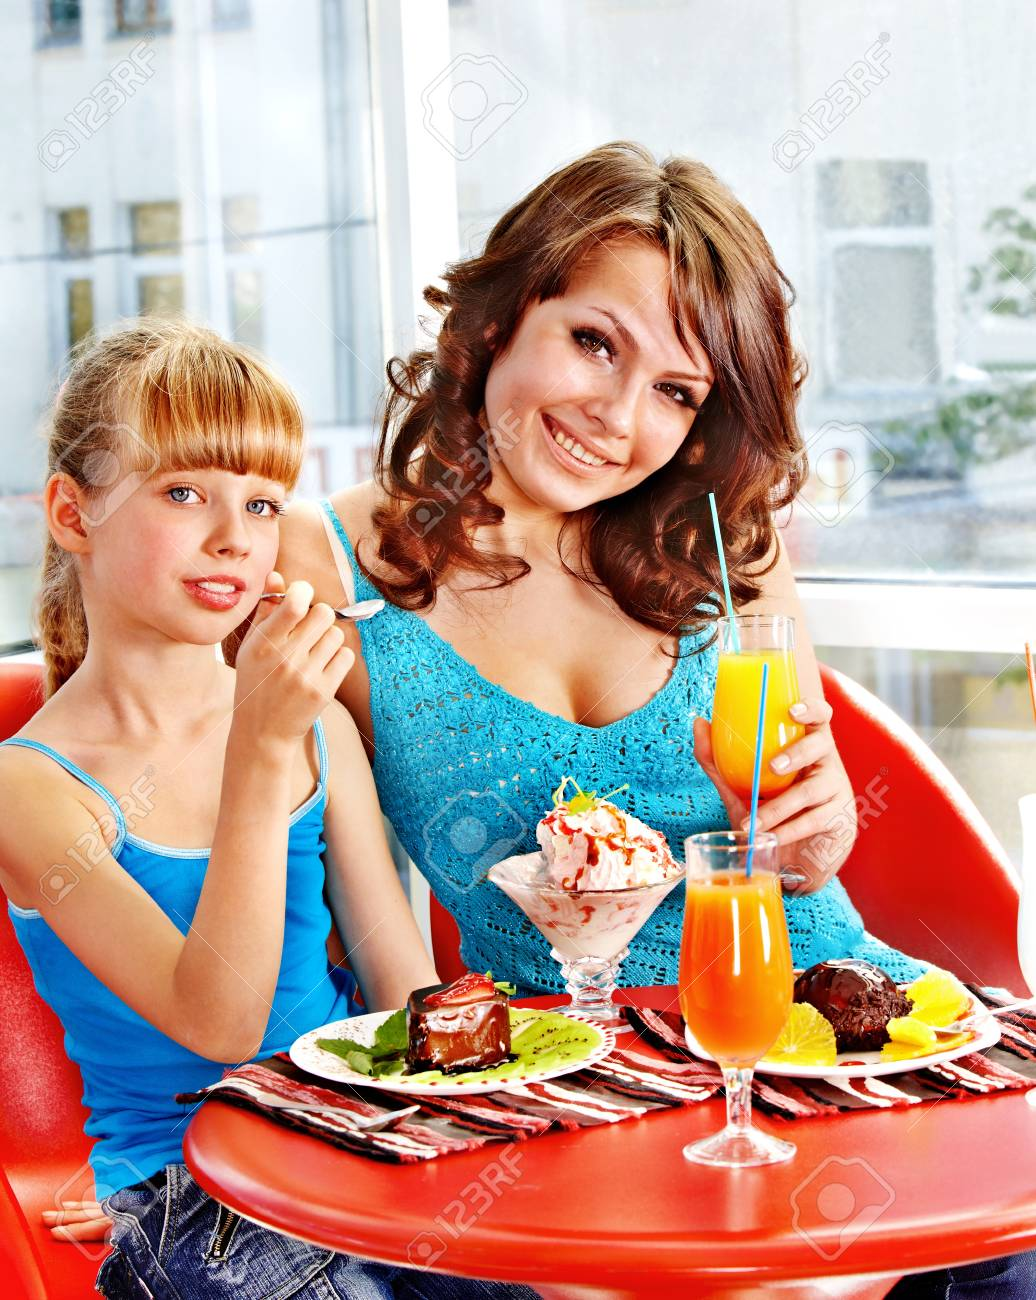 Happy mother and daughter in restaurant. Stock Photo - 17753860